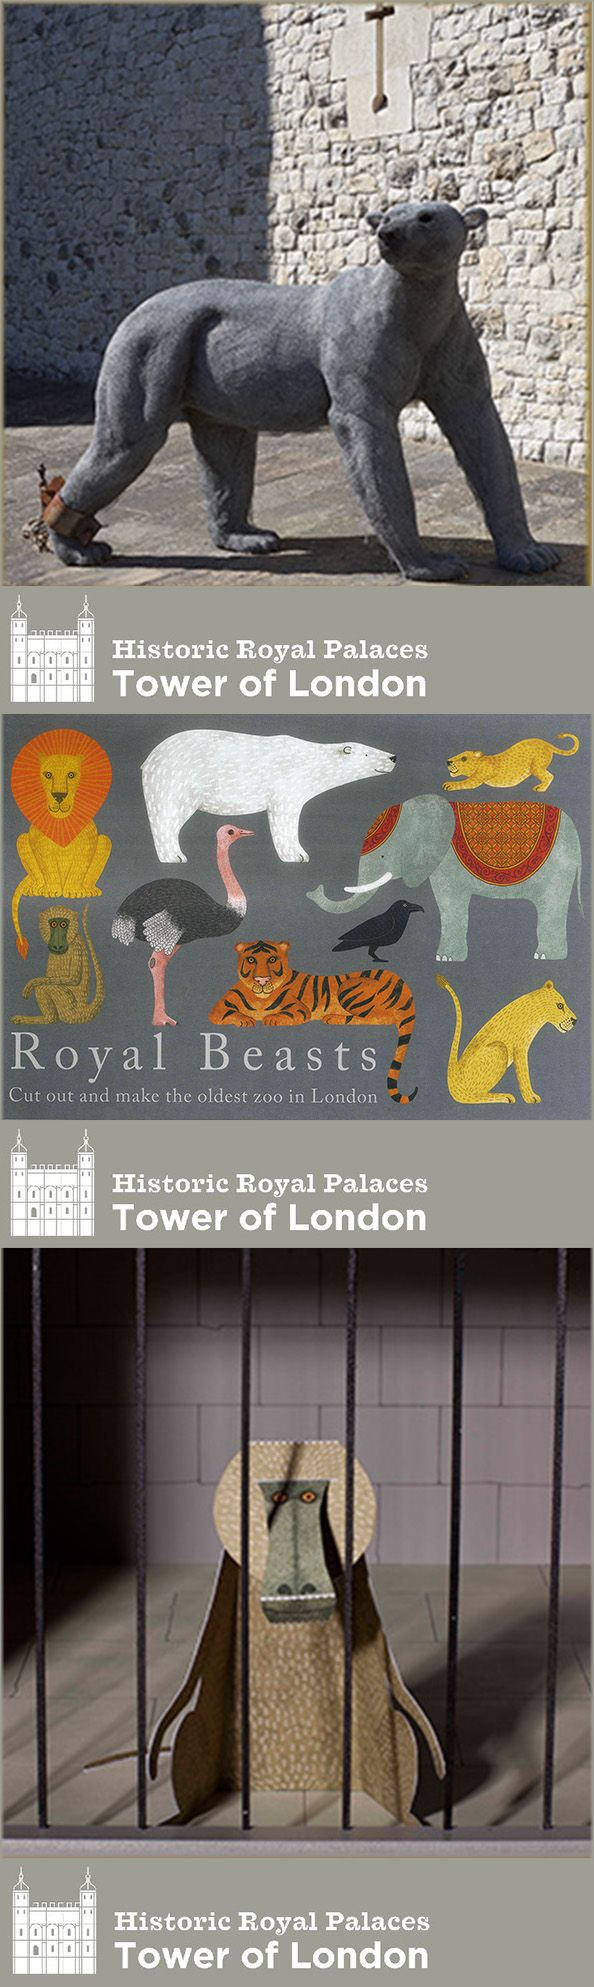 Since the reign of King John animals were kept at the Tower of London for the entertainment and curiosity of the court. Everything from elephants to tigers, kangaroos and ostriches lived in what was known as the Royal Menagerie.